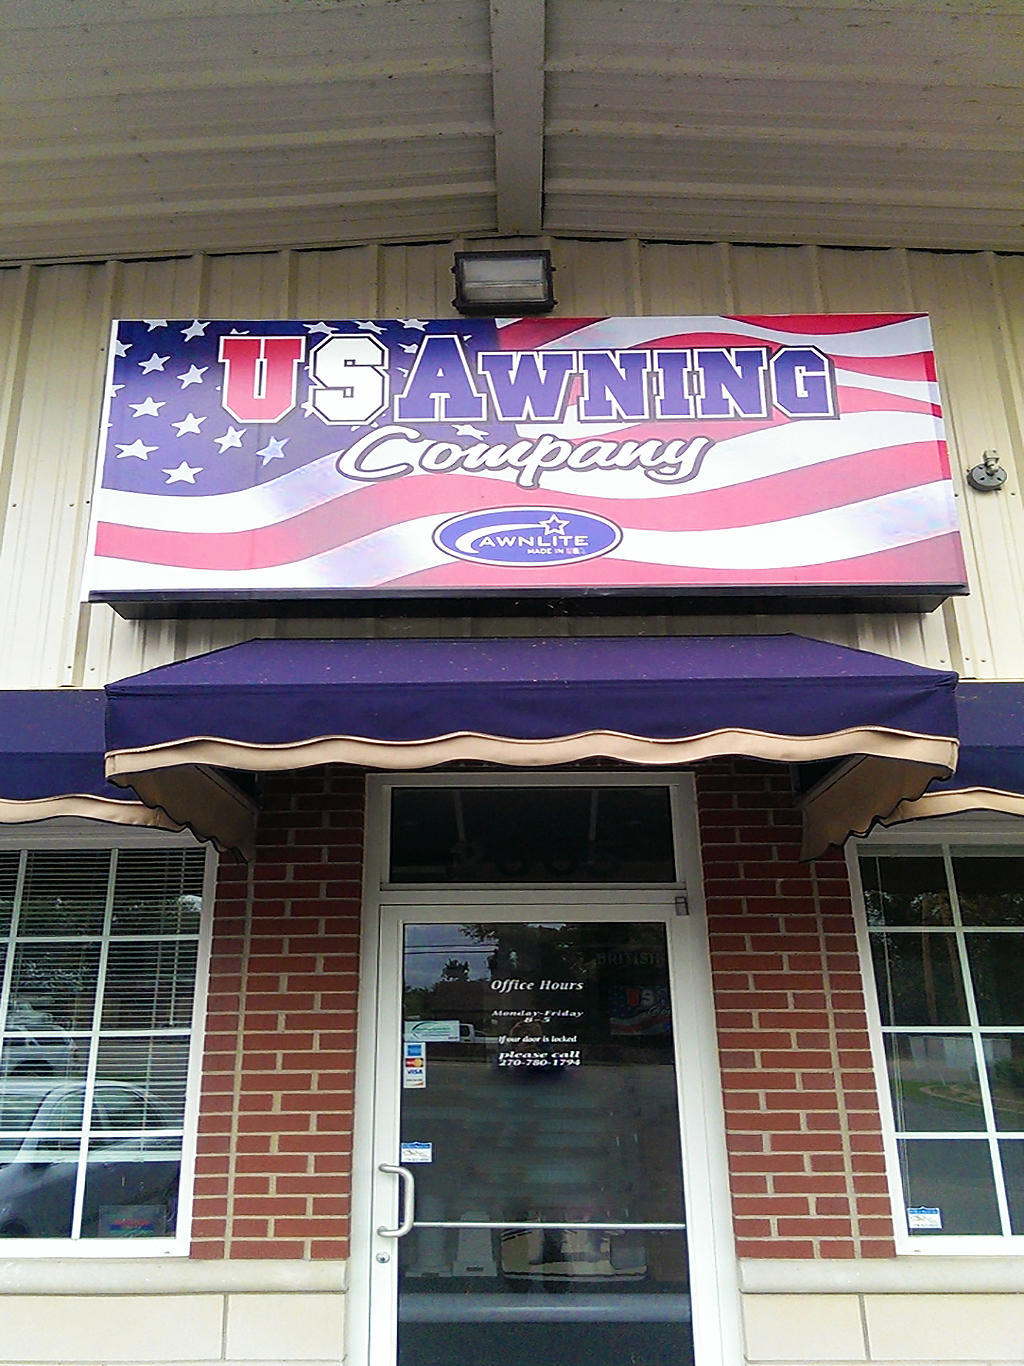 U S Awning Company Coupons near me in Bowling Green, KY ...